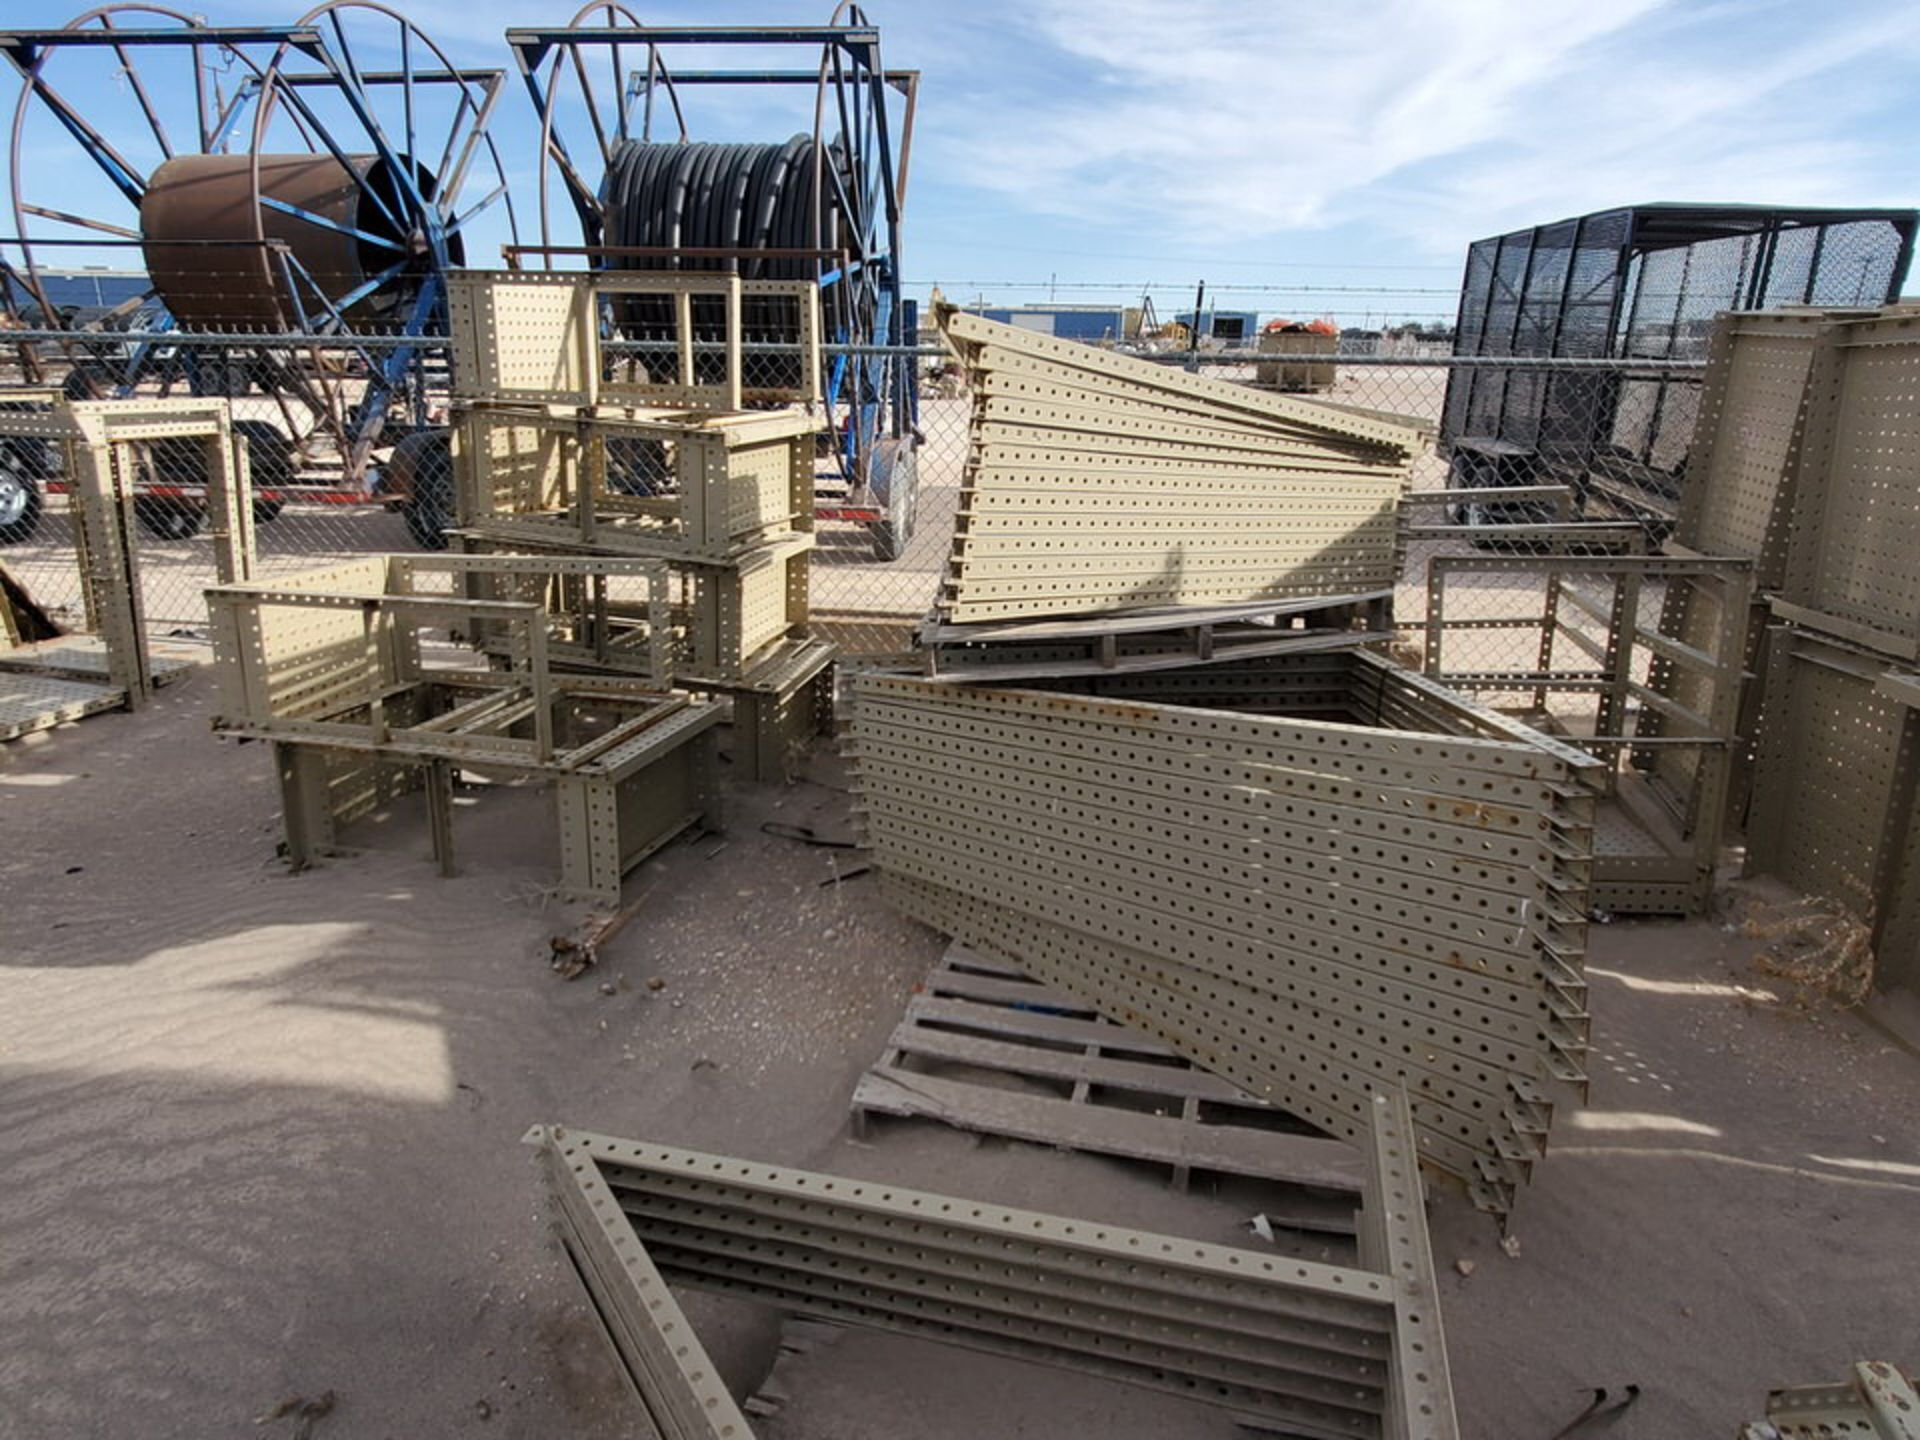 Disassembled Catwalk Sections - Image 11 of 12